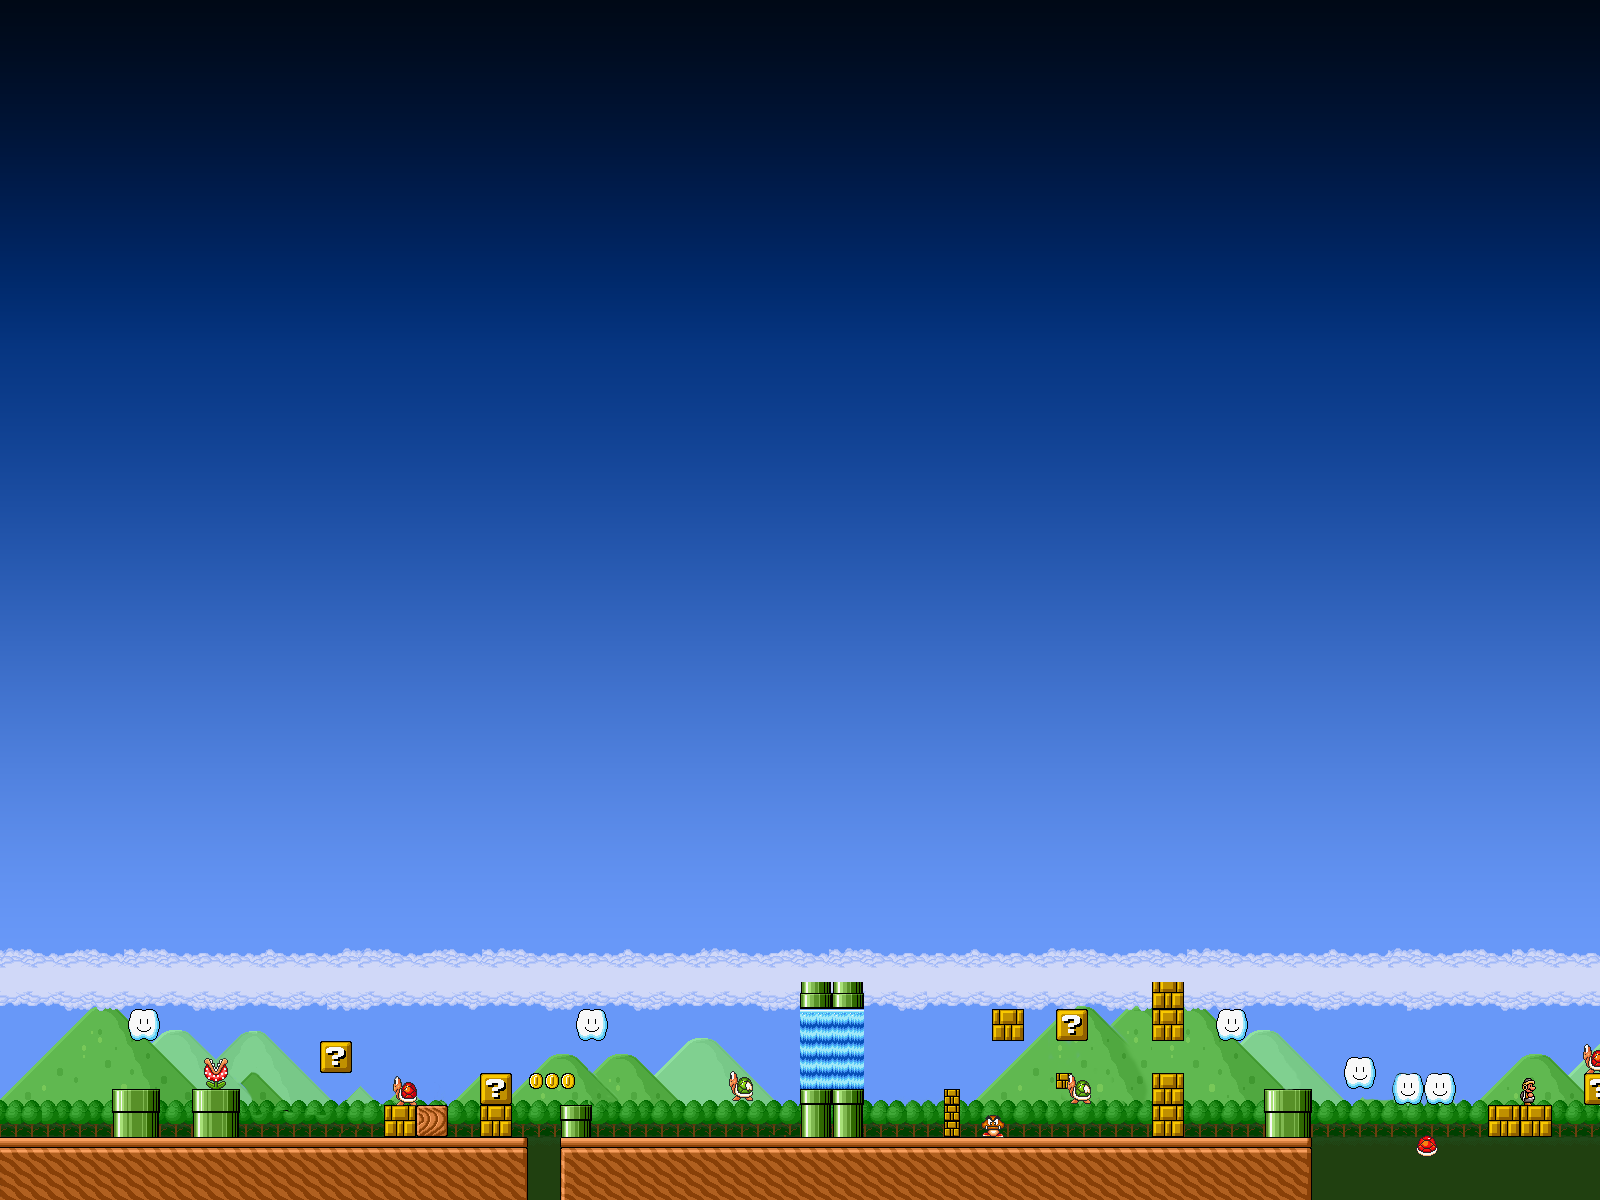 Many of these 8-bit inspired backgrounds look quite nice as homescreen wallpapers on Android phones. Bearded Super Mario, wooden Mario, and this platform ...